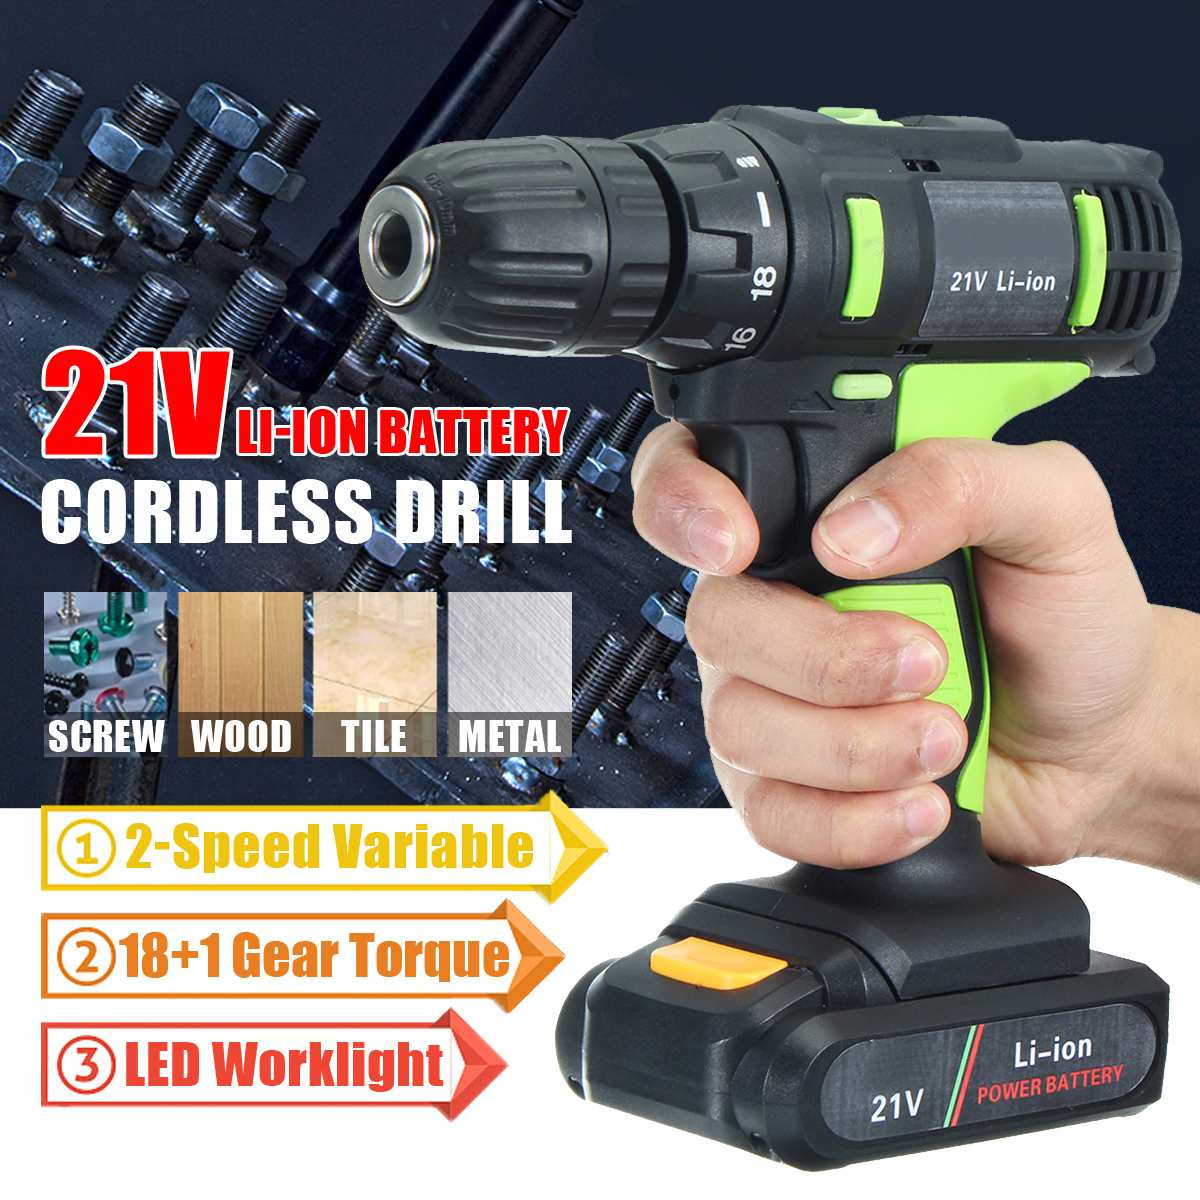 21V Screwdriver Cordless Drill Household Electric Mini 0-450 0-1450r/min 1 Lithium Battery Charger21V Screwdriver Cordless Drill Household Electric Mini 0-450 0-1450r/min 1 Lithium Battery Charger